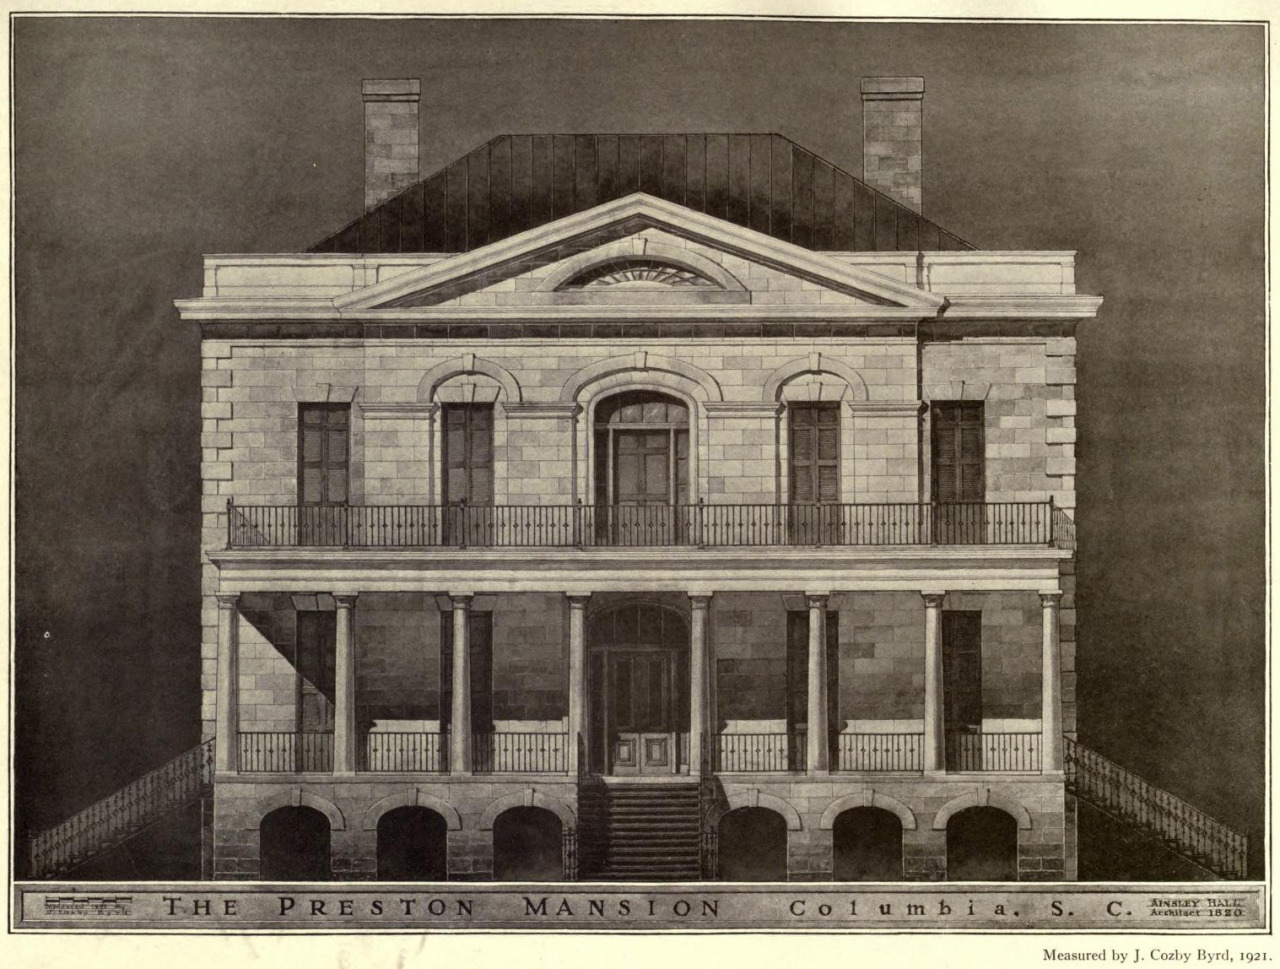 Elevation of the Preston Mansion, Columbia